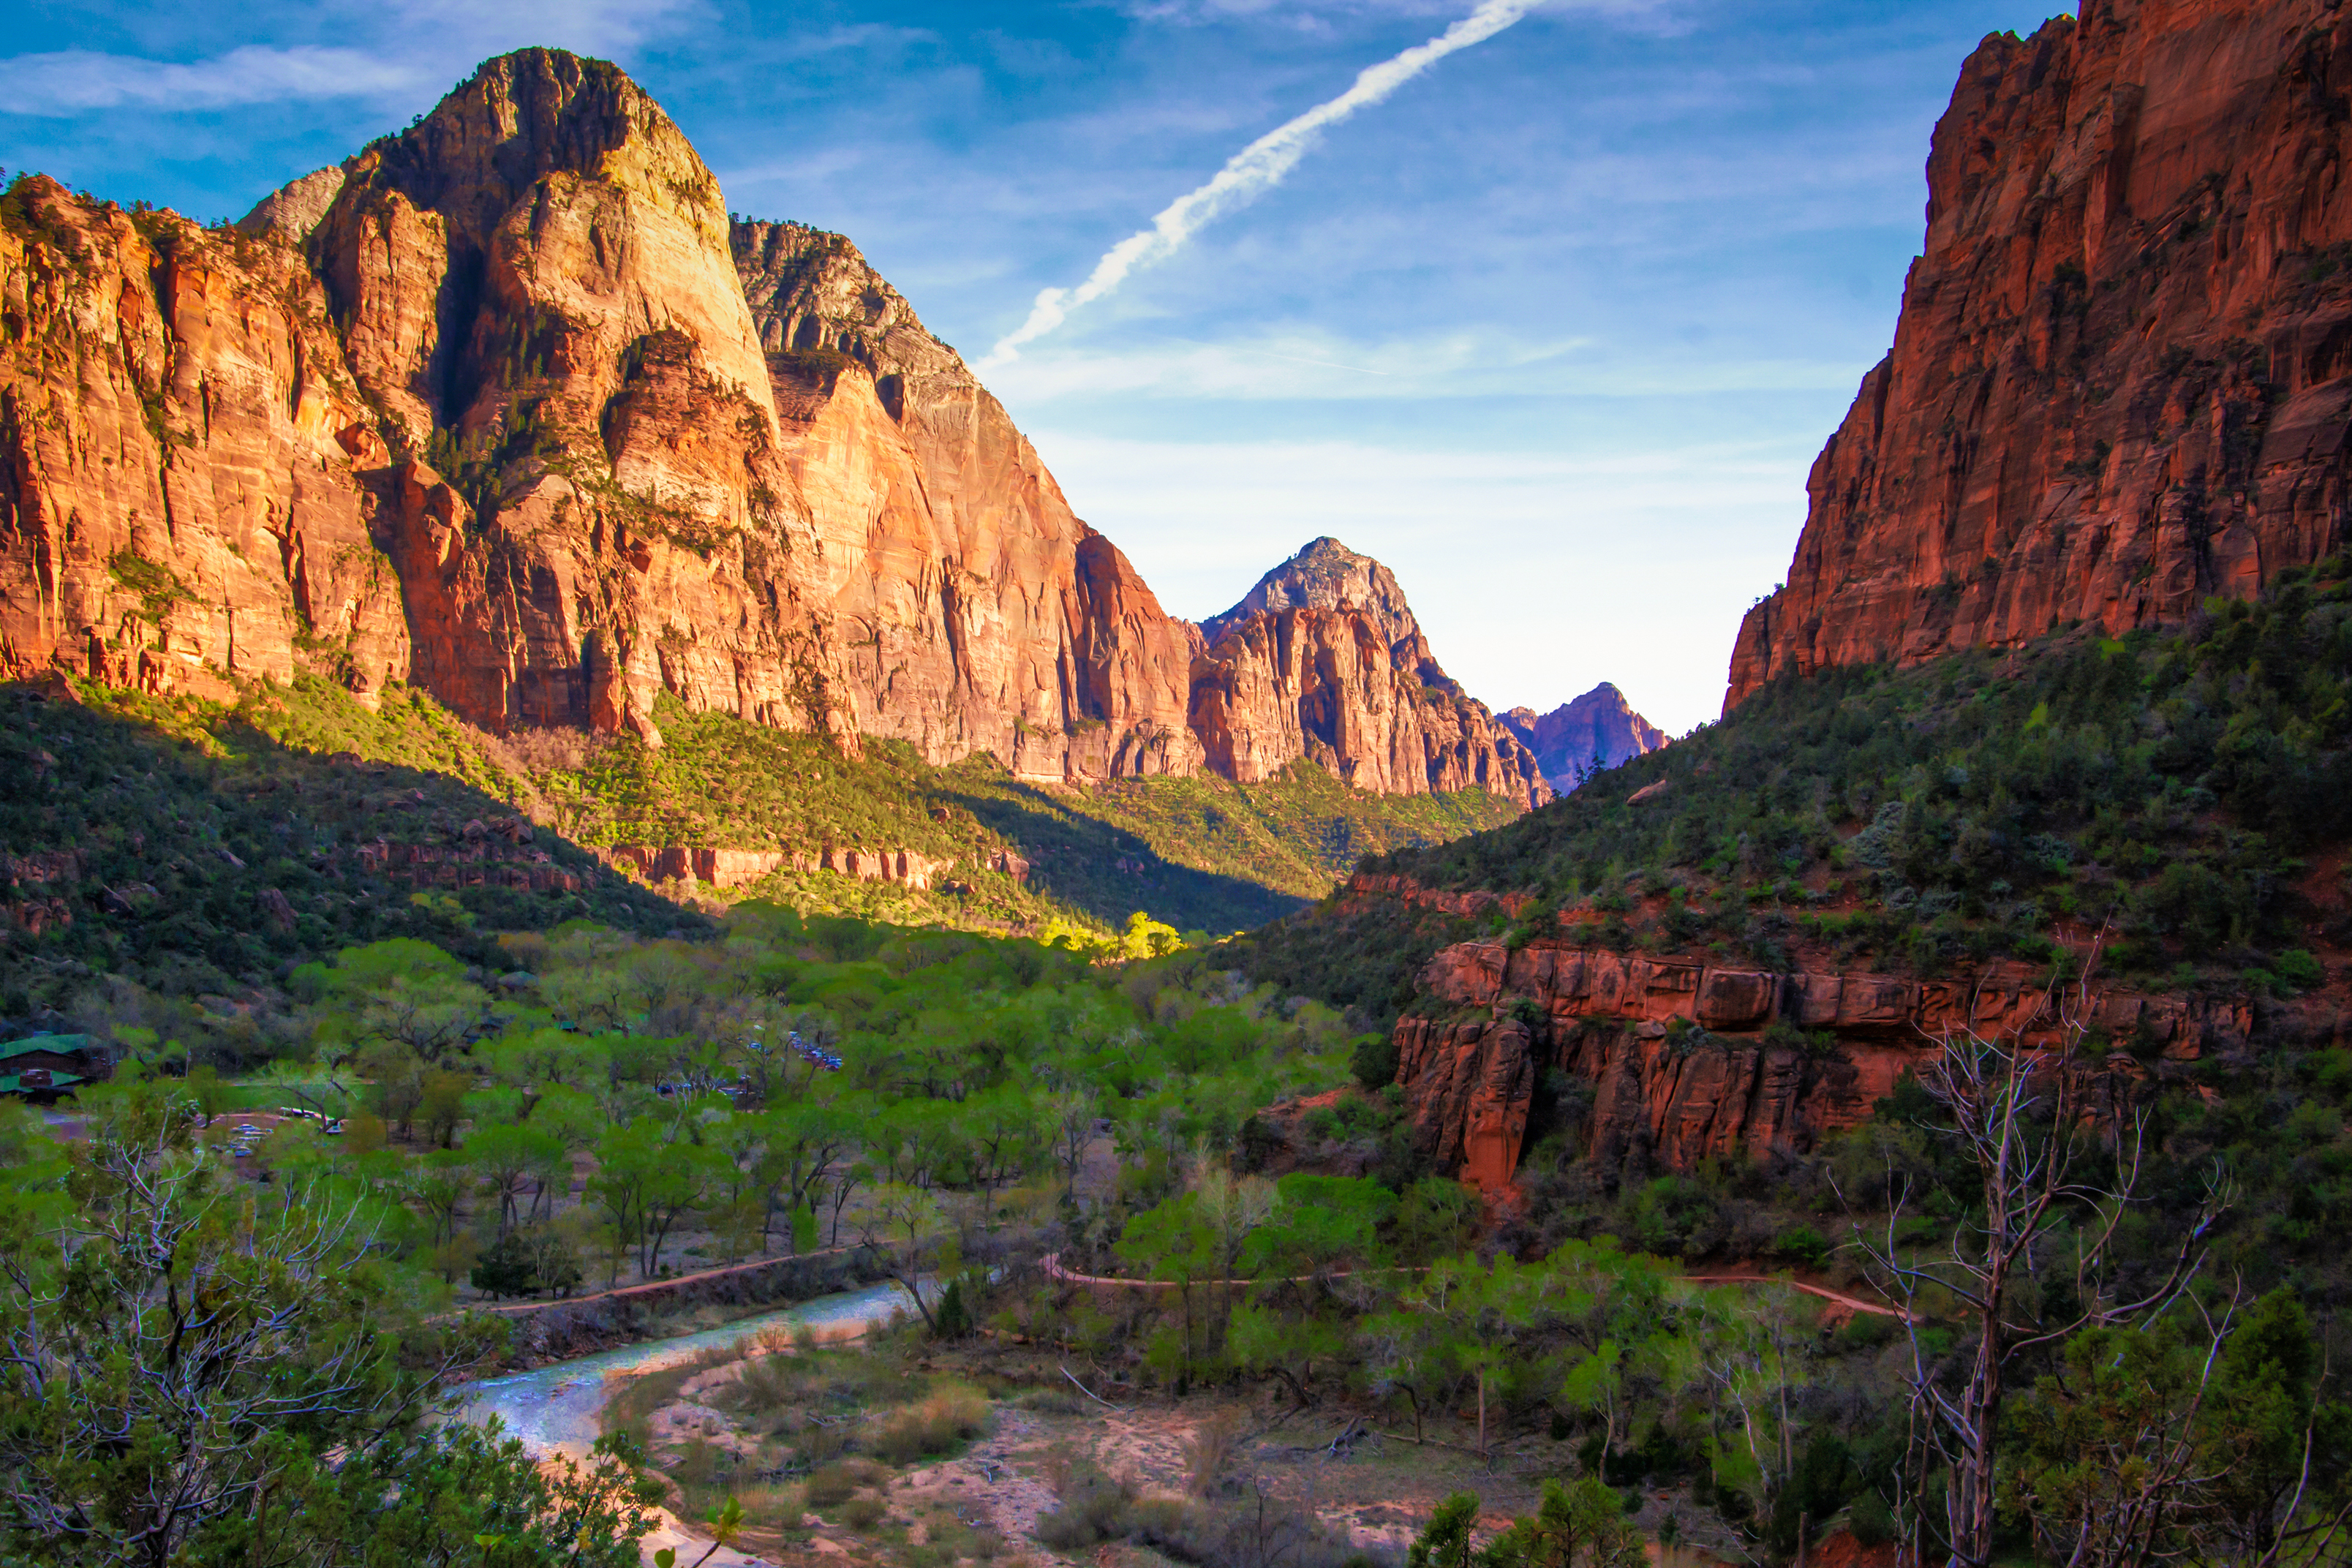 The Virgin River and Mountain of the Sun